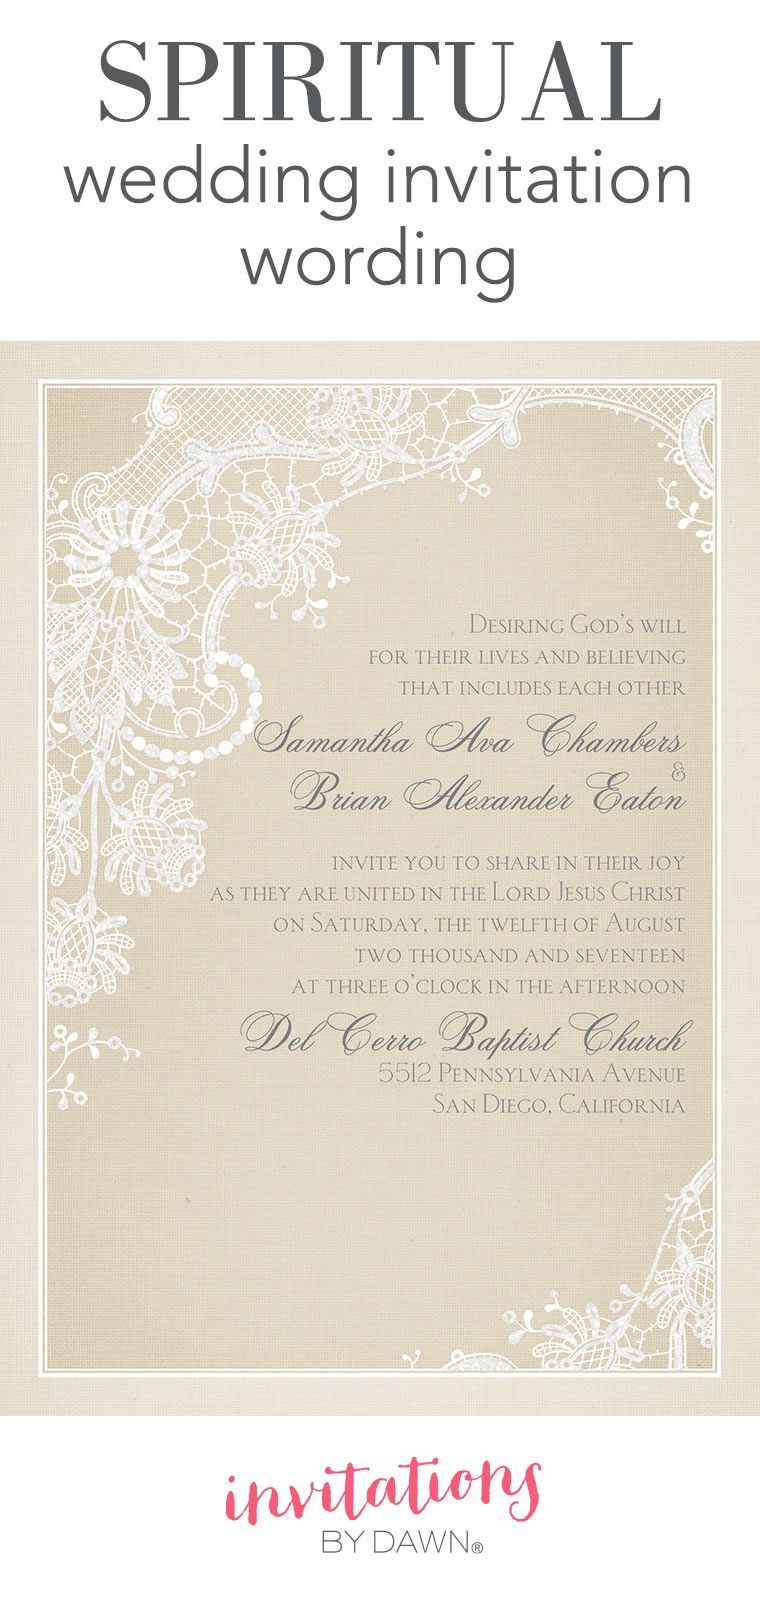 wedding invitations samples Your wedding invitation is an opportunity to express your love for each other and the faith